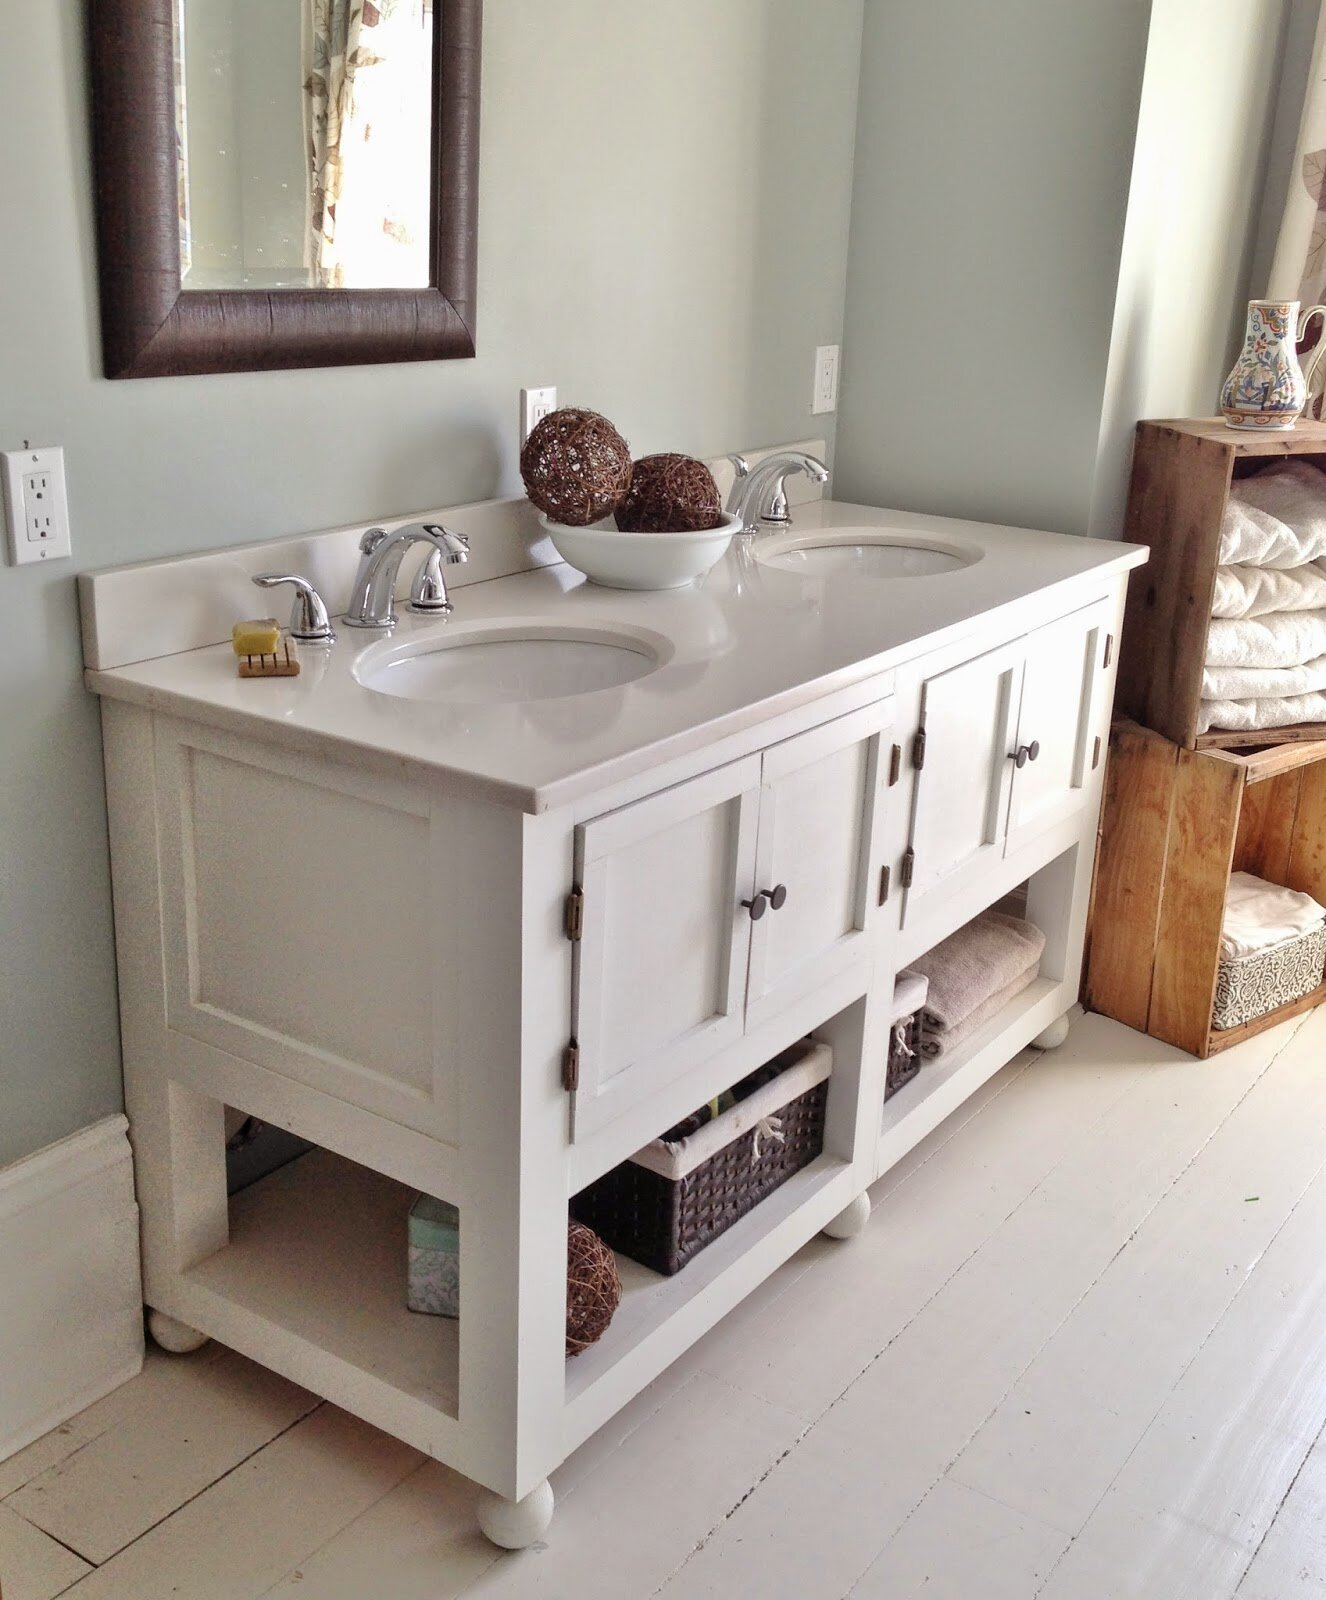 Farmhouse Vanity Gallery Of Bathroom Wonderful Rustic Bathroom Vanities Combined With Mirror